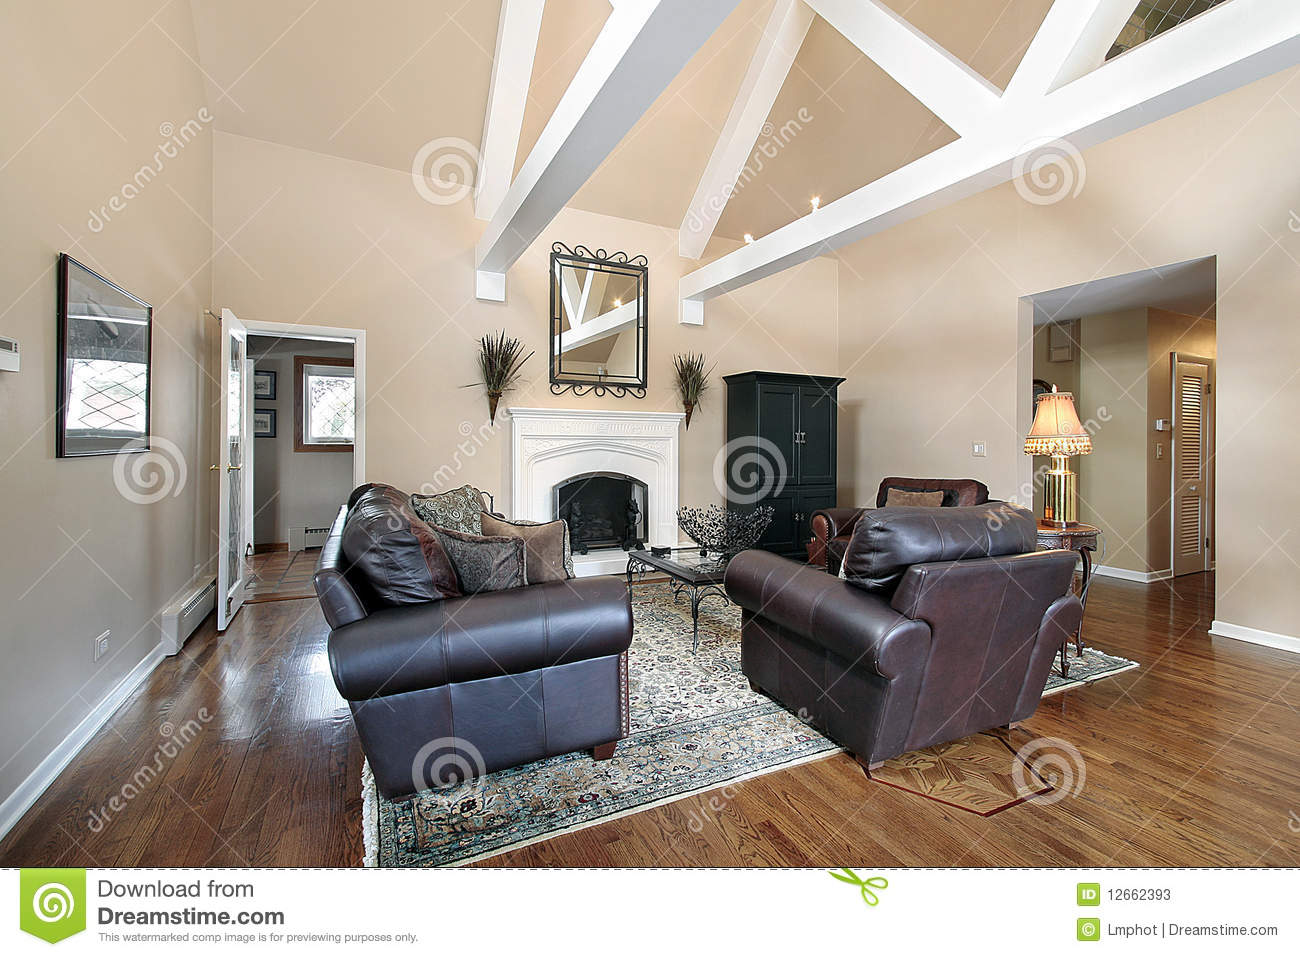 living room beams living room with ceiling beams stock image image 12662393 10883